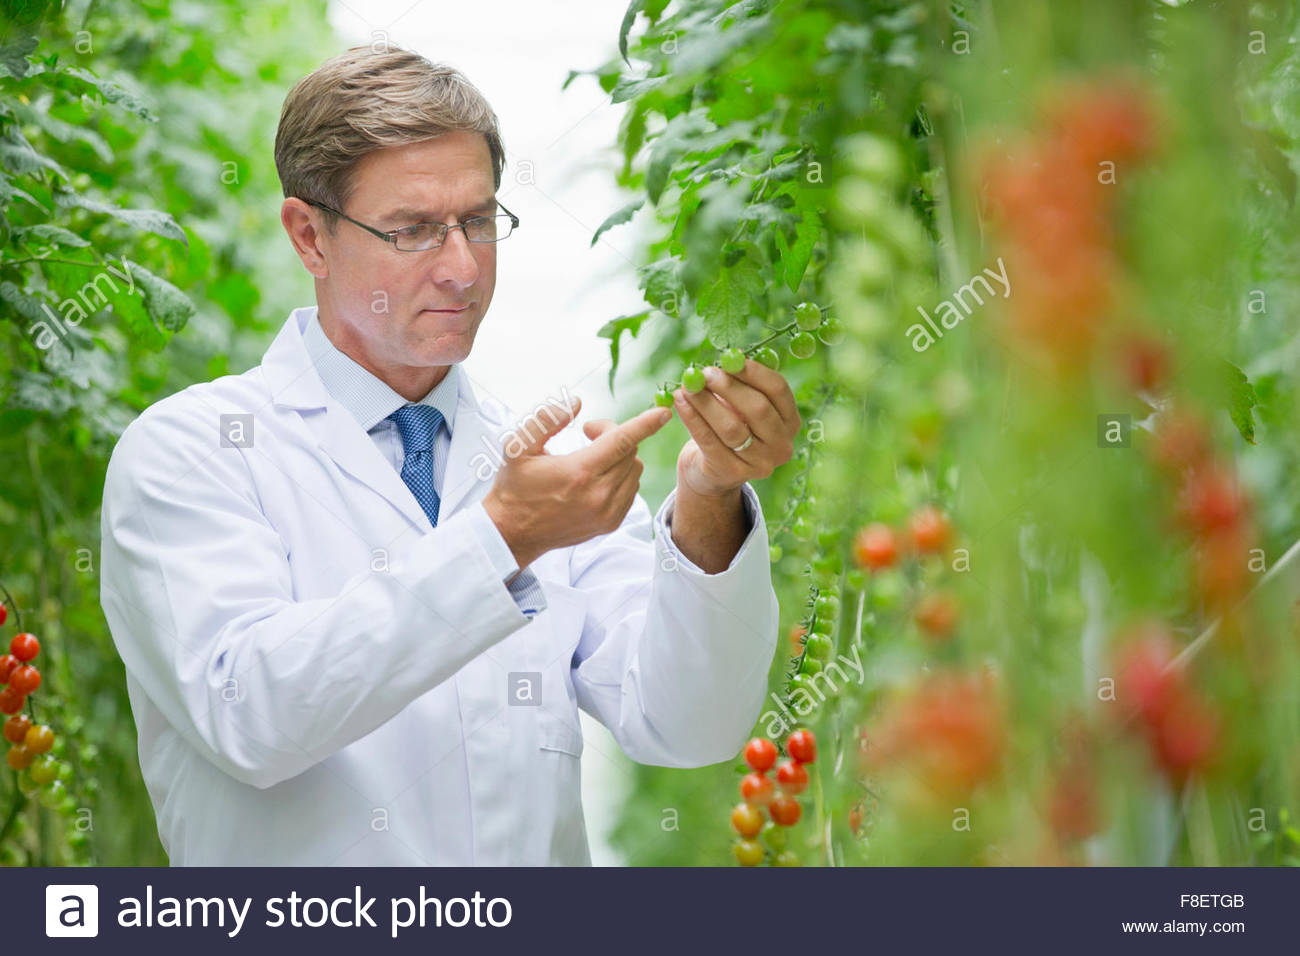 Focused food scientist examining vine tomato plants in greenhouse Stock Photo